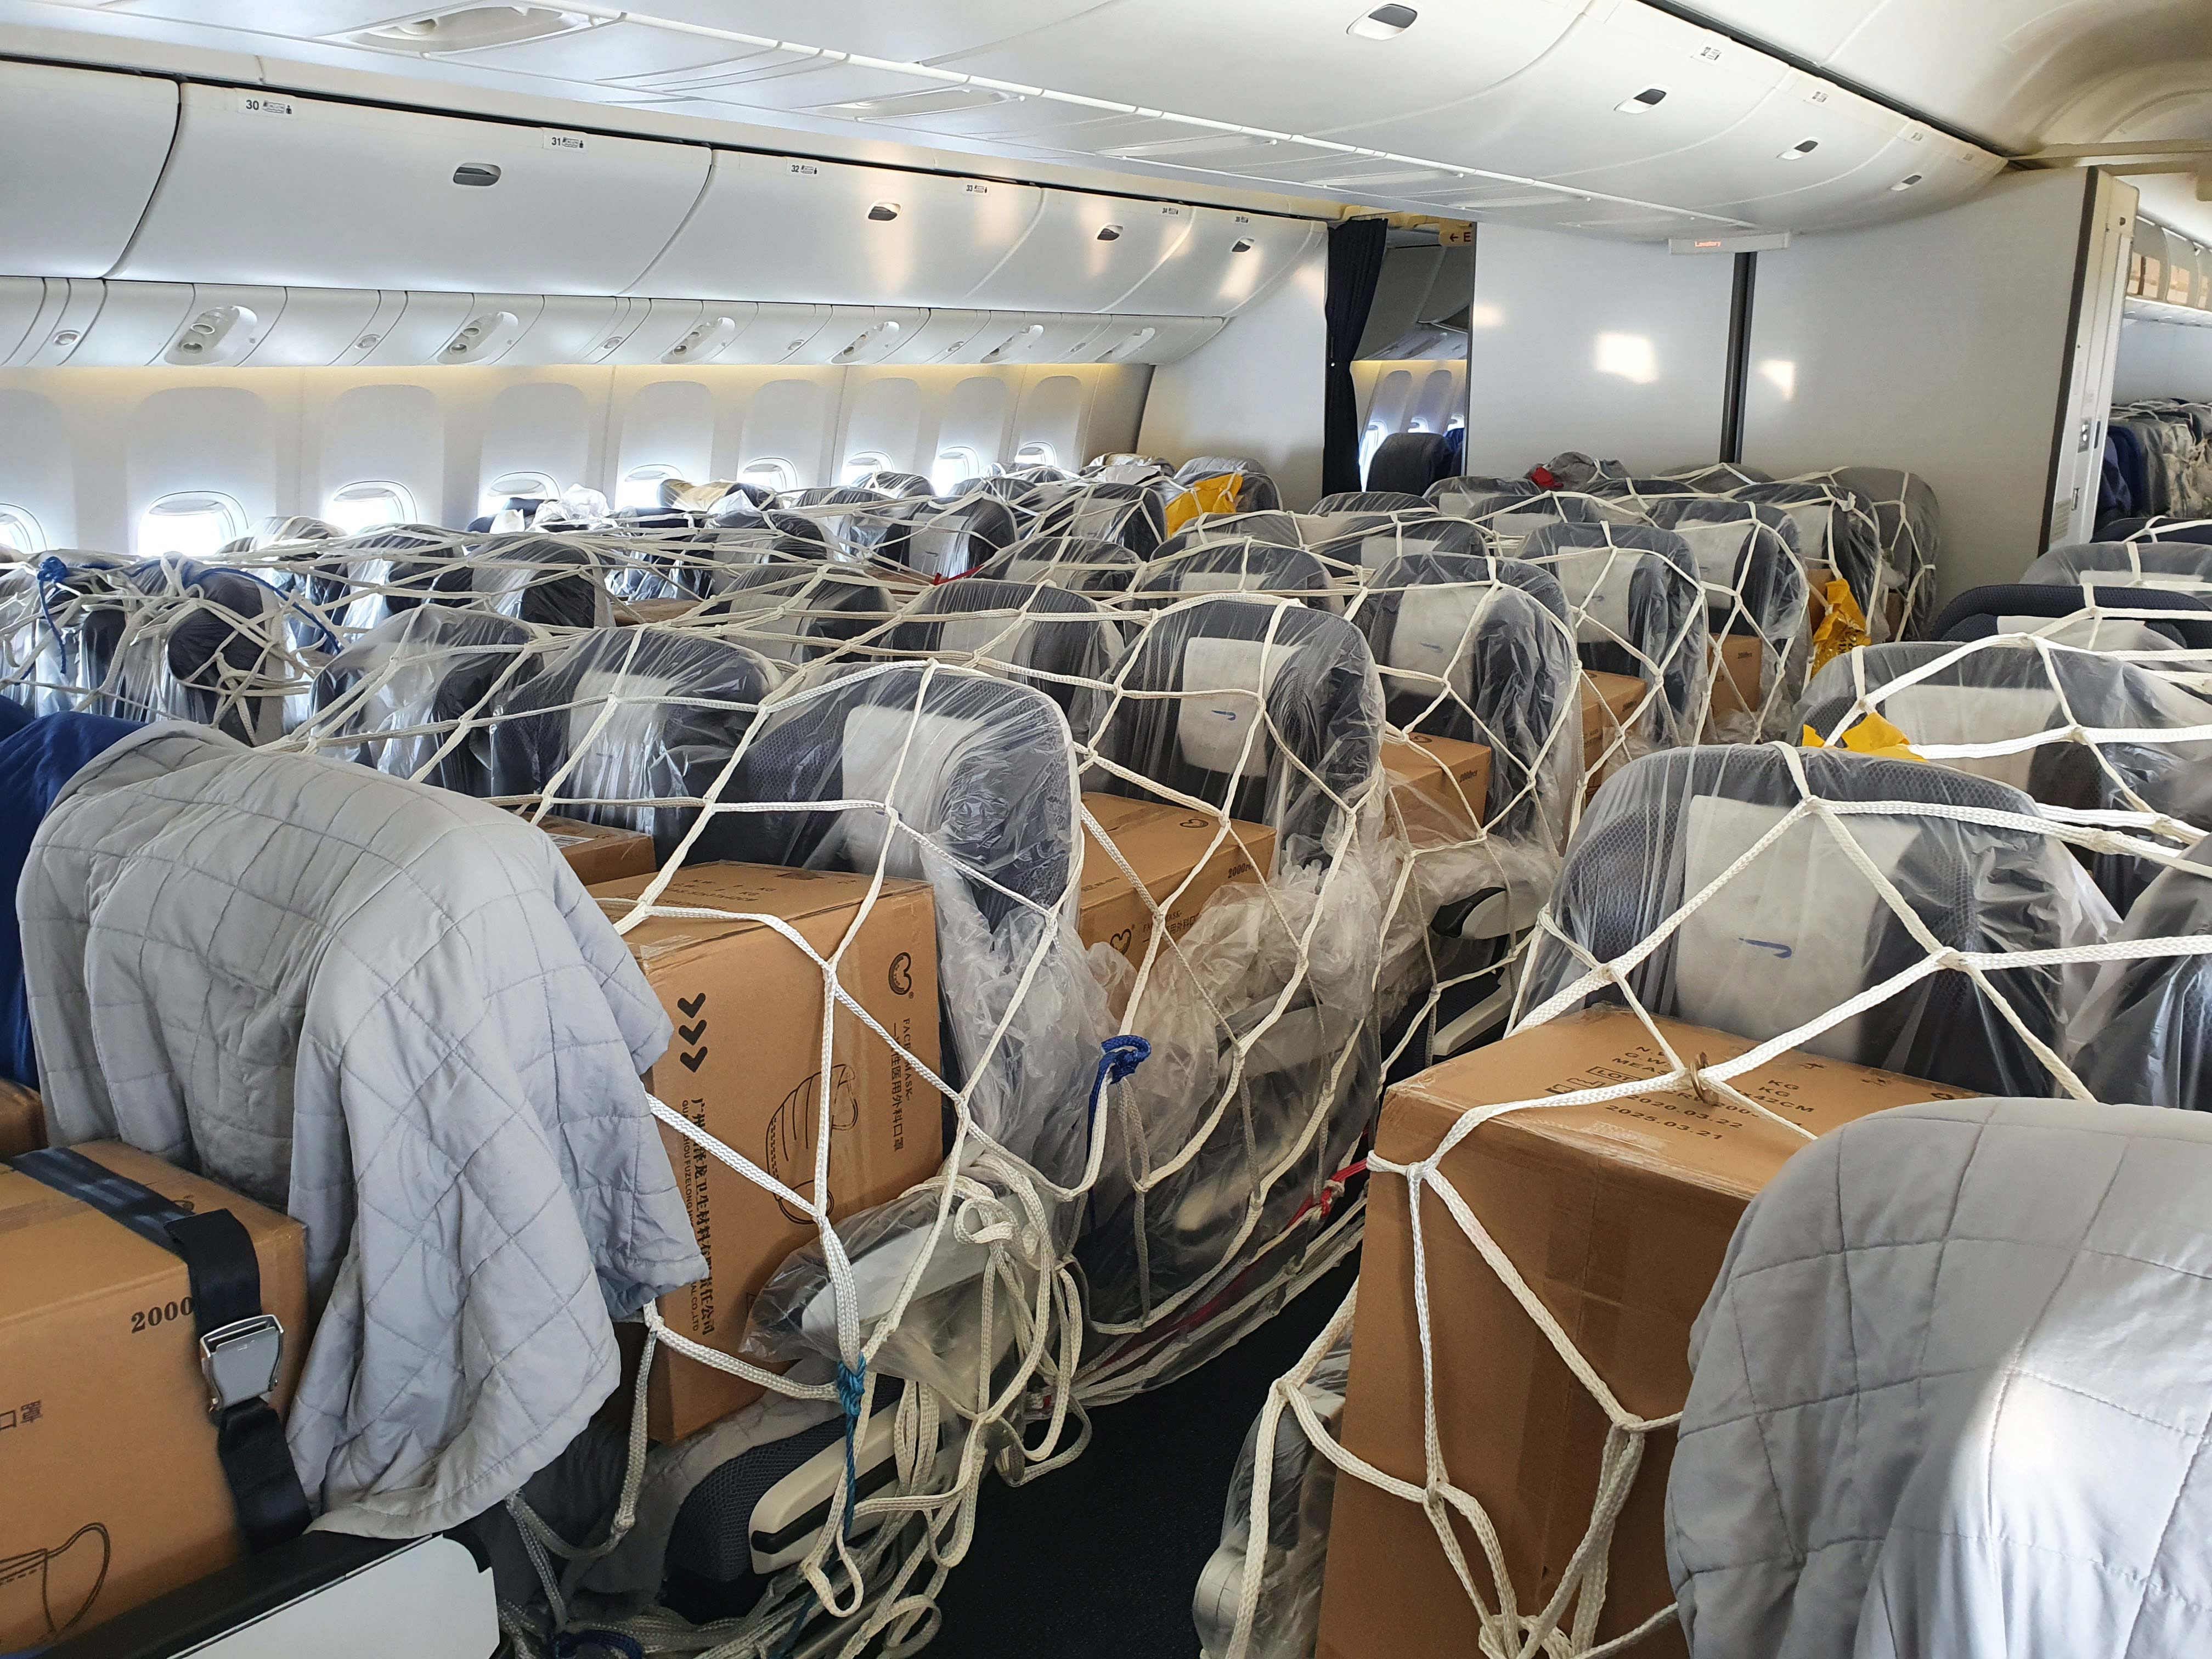 IAG Cargo and British Airways work together to expand aircraft cargo capacity with use of passenger cabins, as seen in this shipment of essential PPE equipment for the NHS which landed in the UK this week